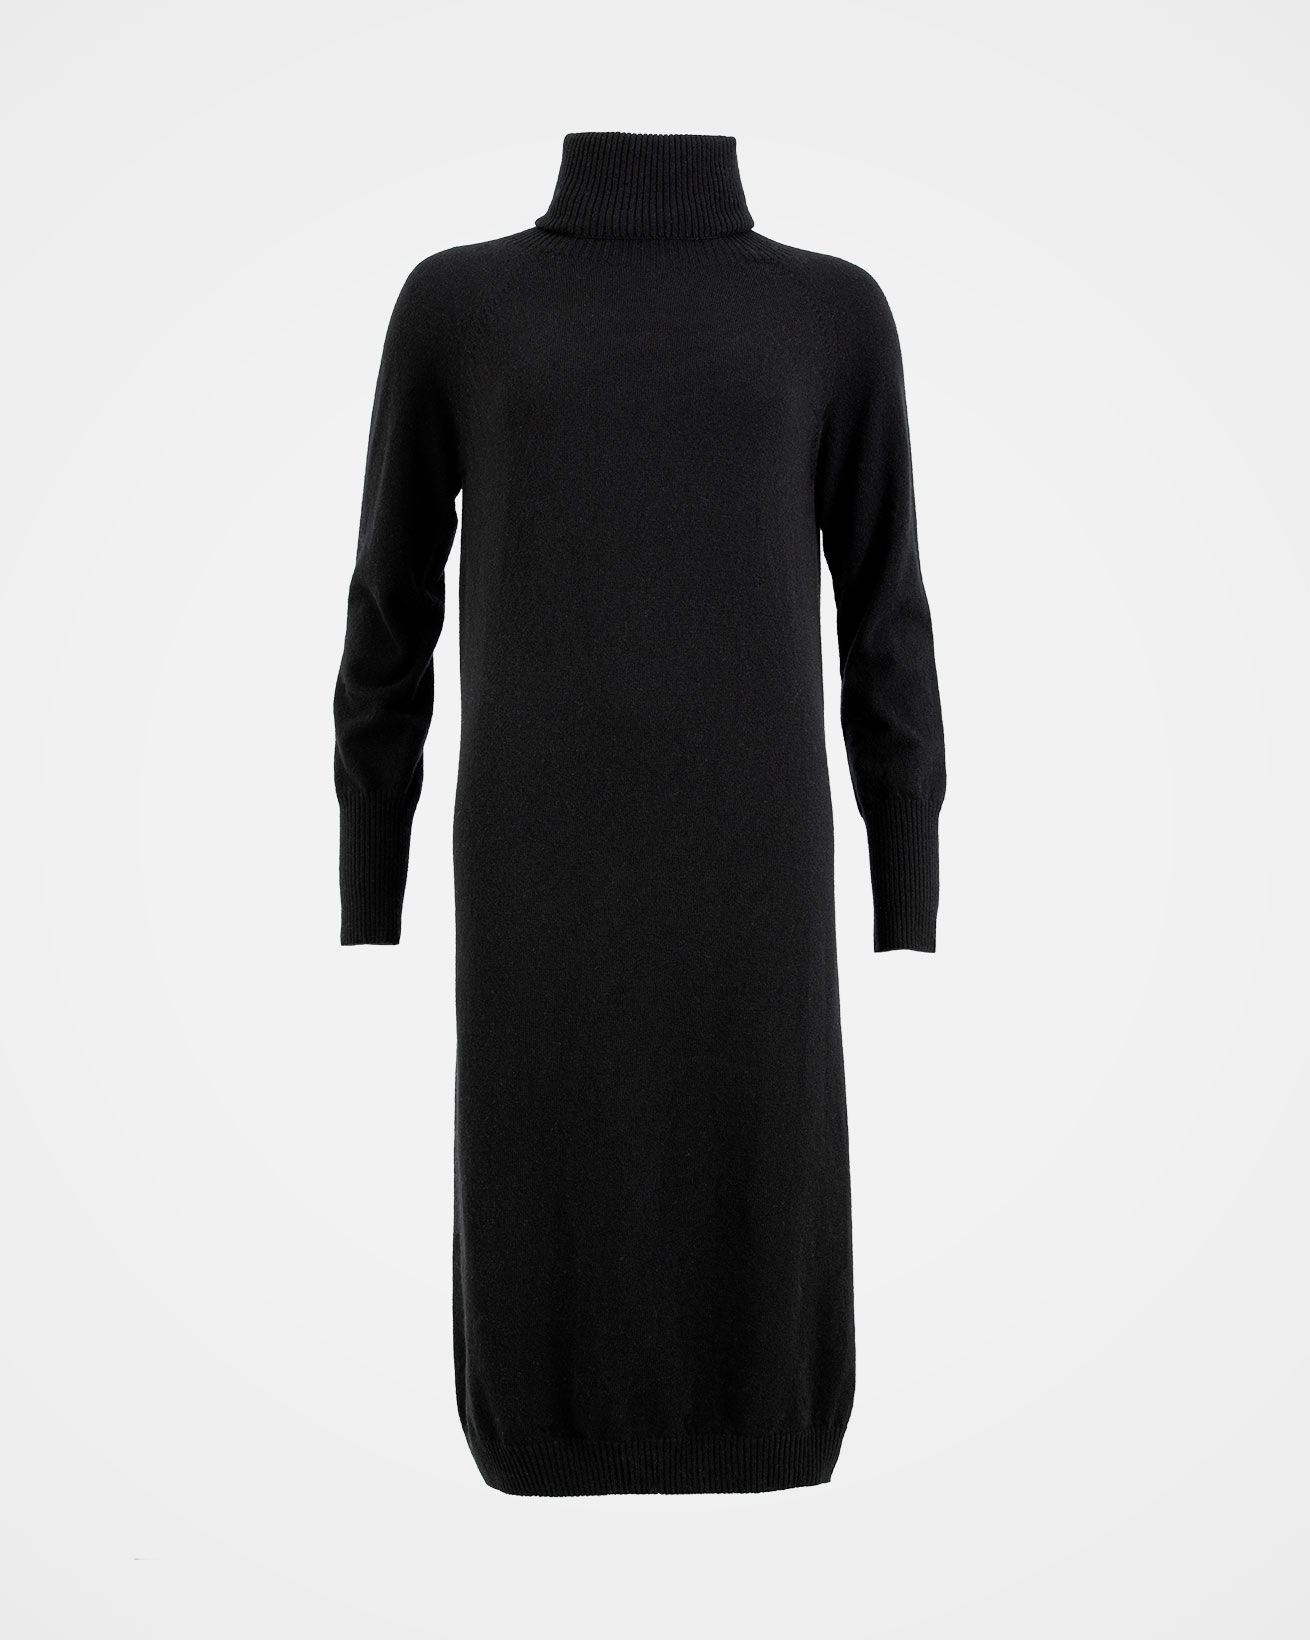 7603_supersoft-rollneck-dress_black_front.jpg